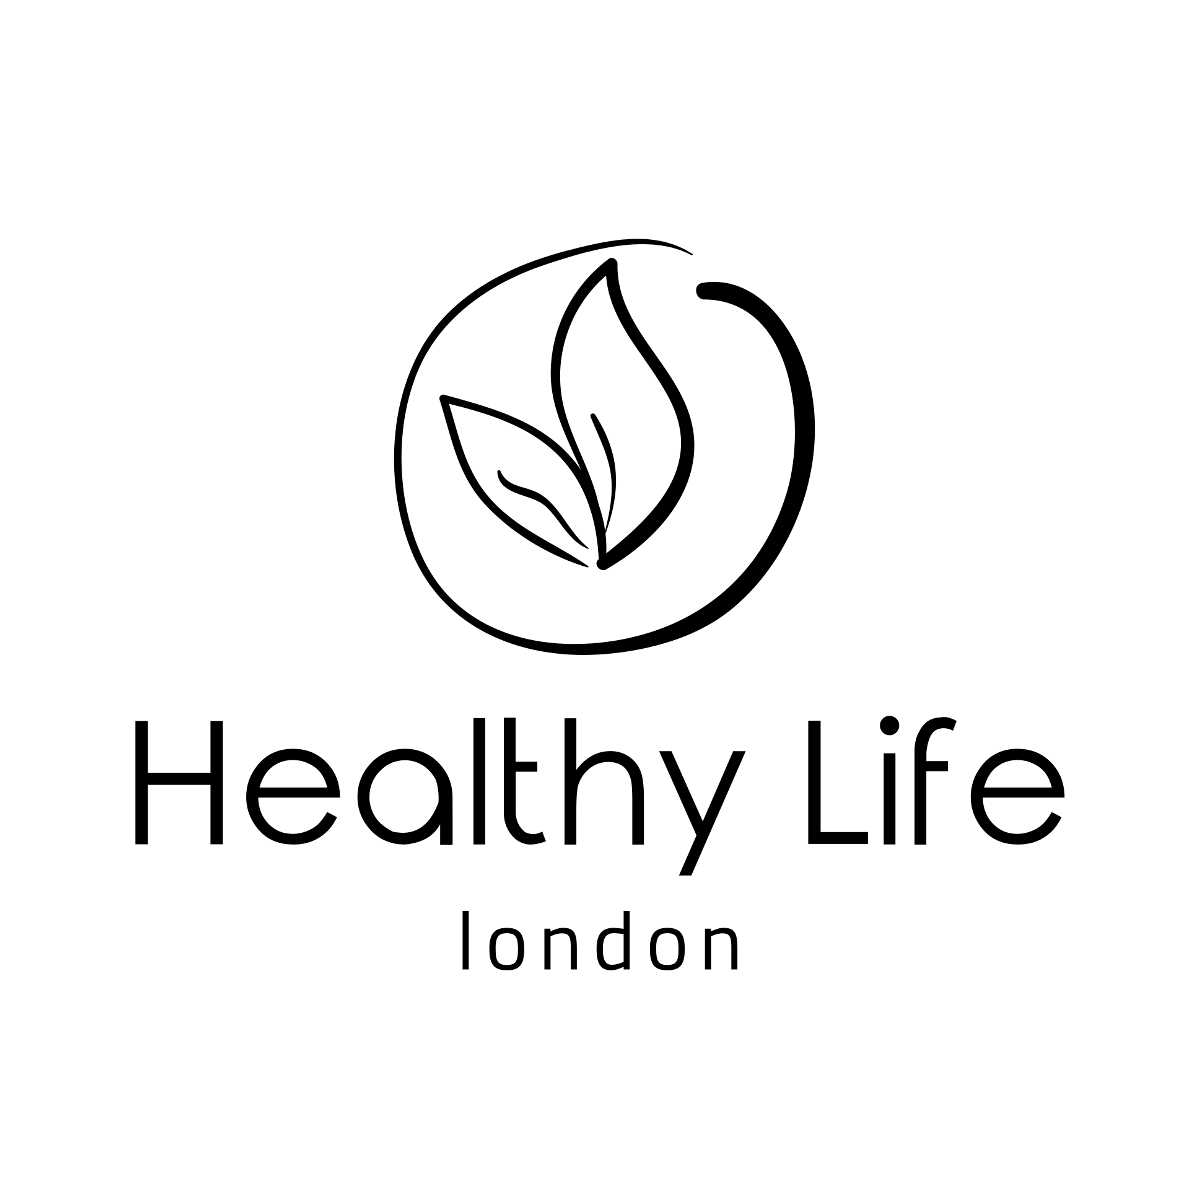 Healthy Life London